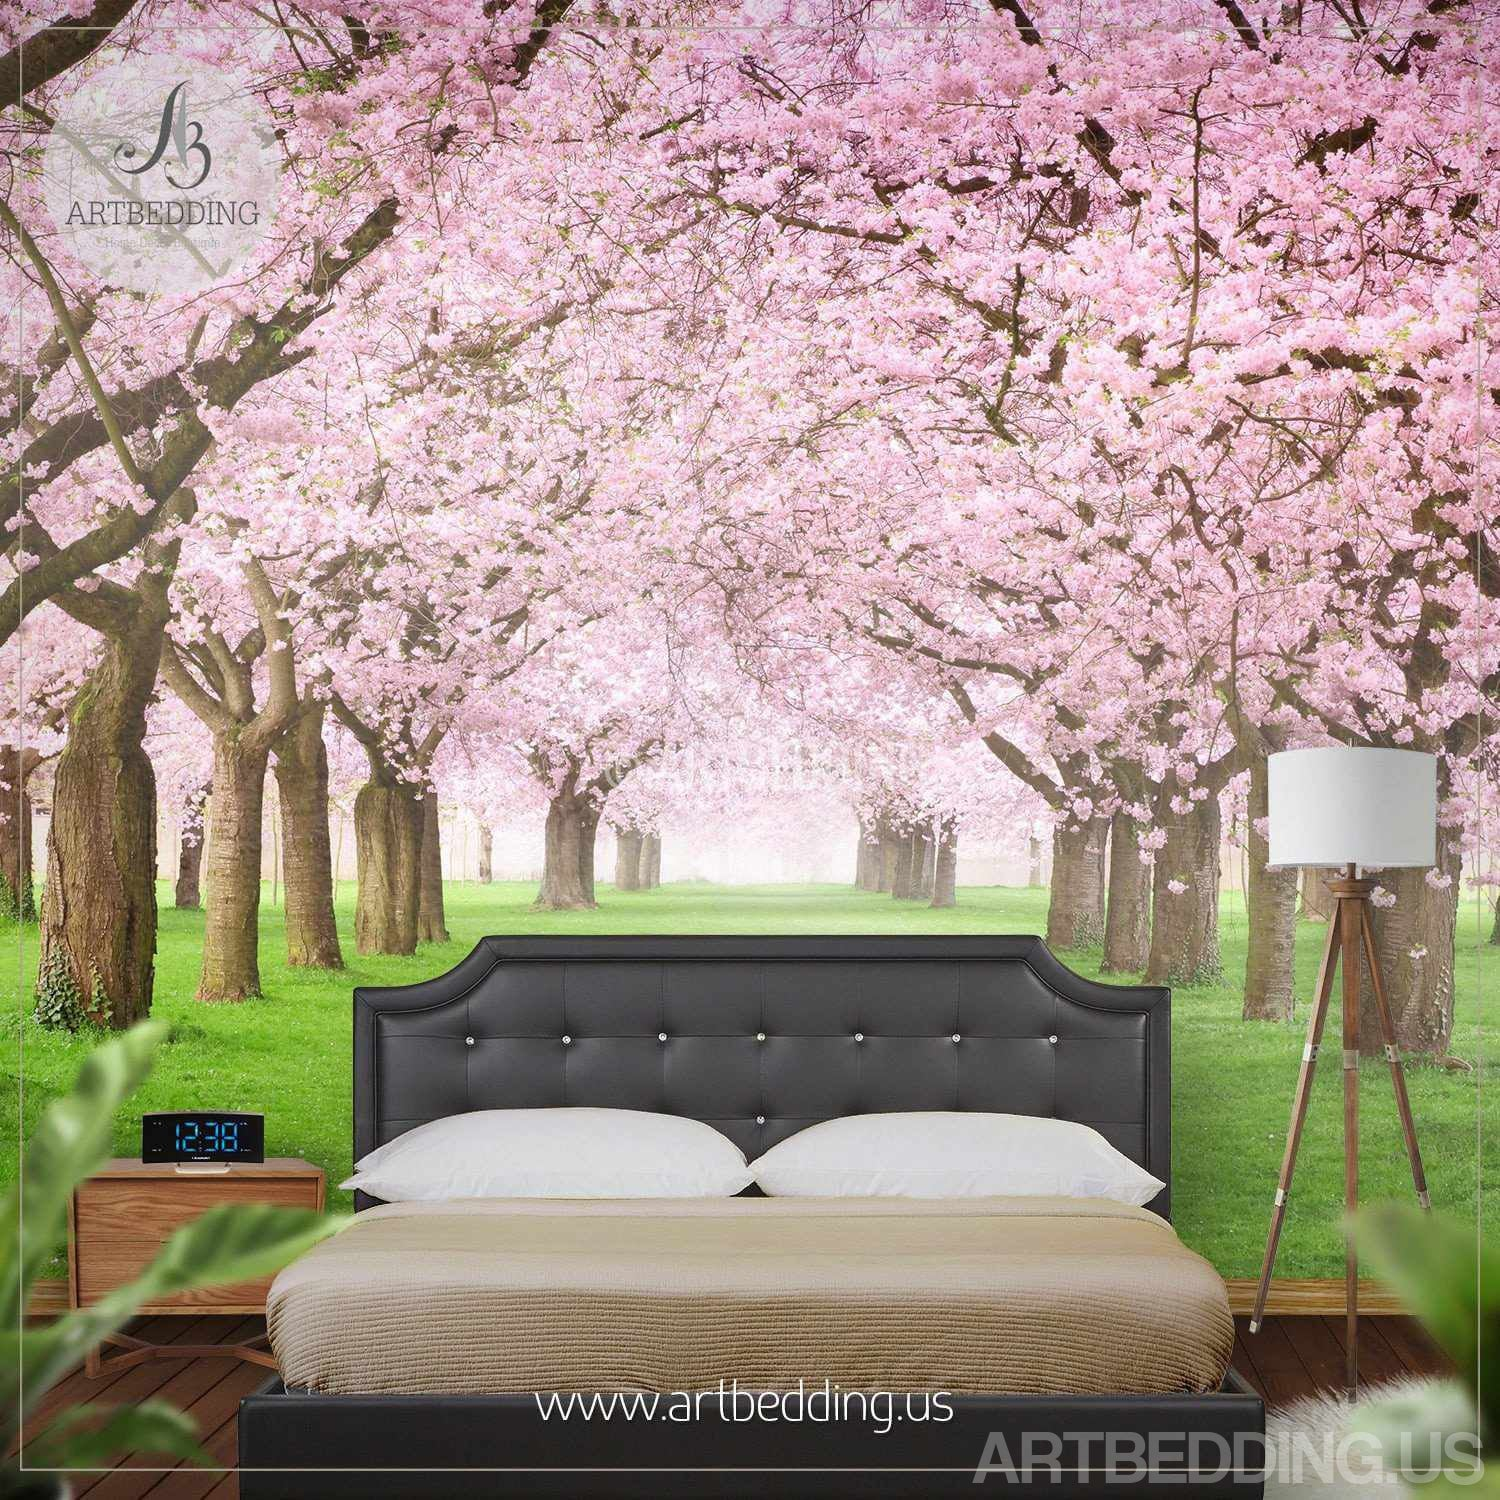 Nature Wall Mural Chery Blossom Pathway On A Green Lawn Cherry